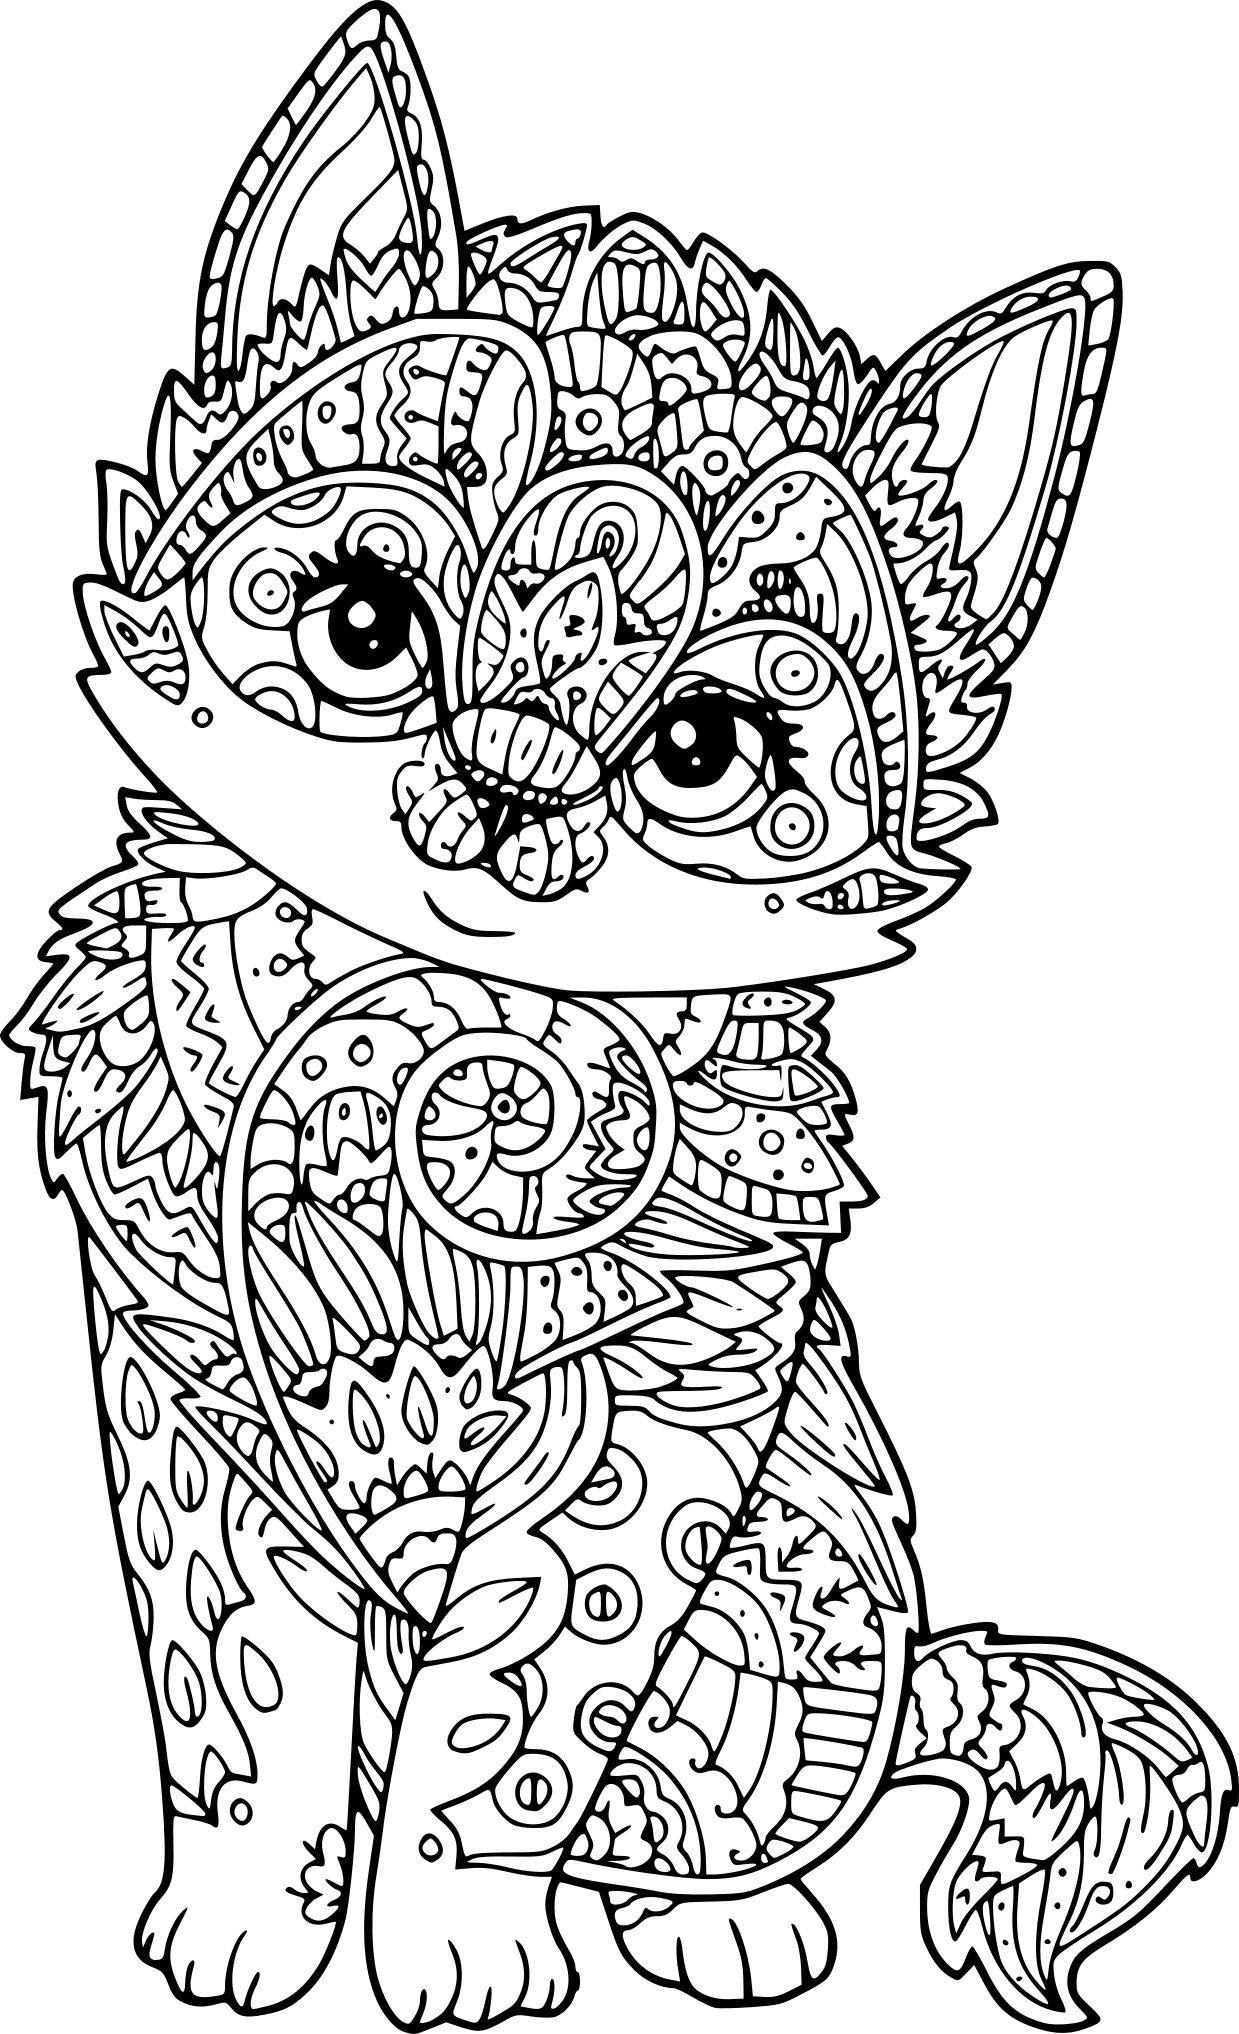 rose coloring pages - chat antistress